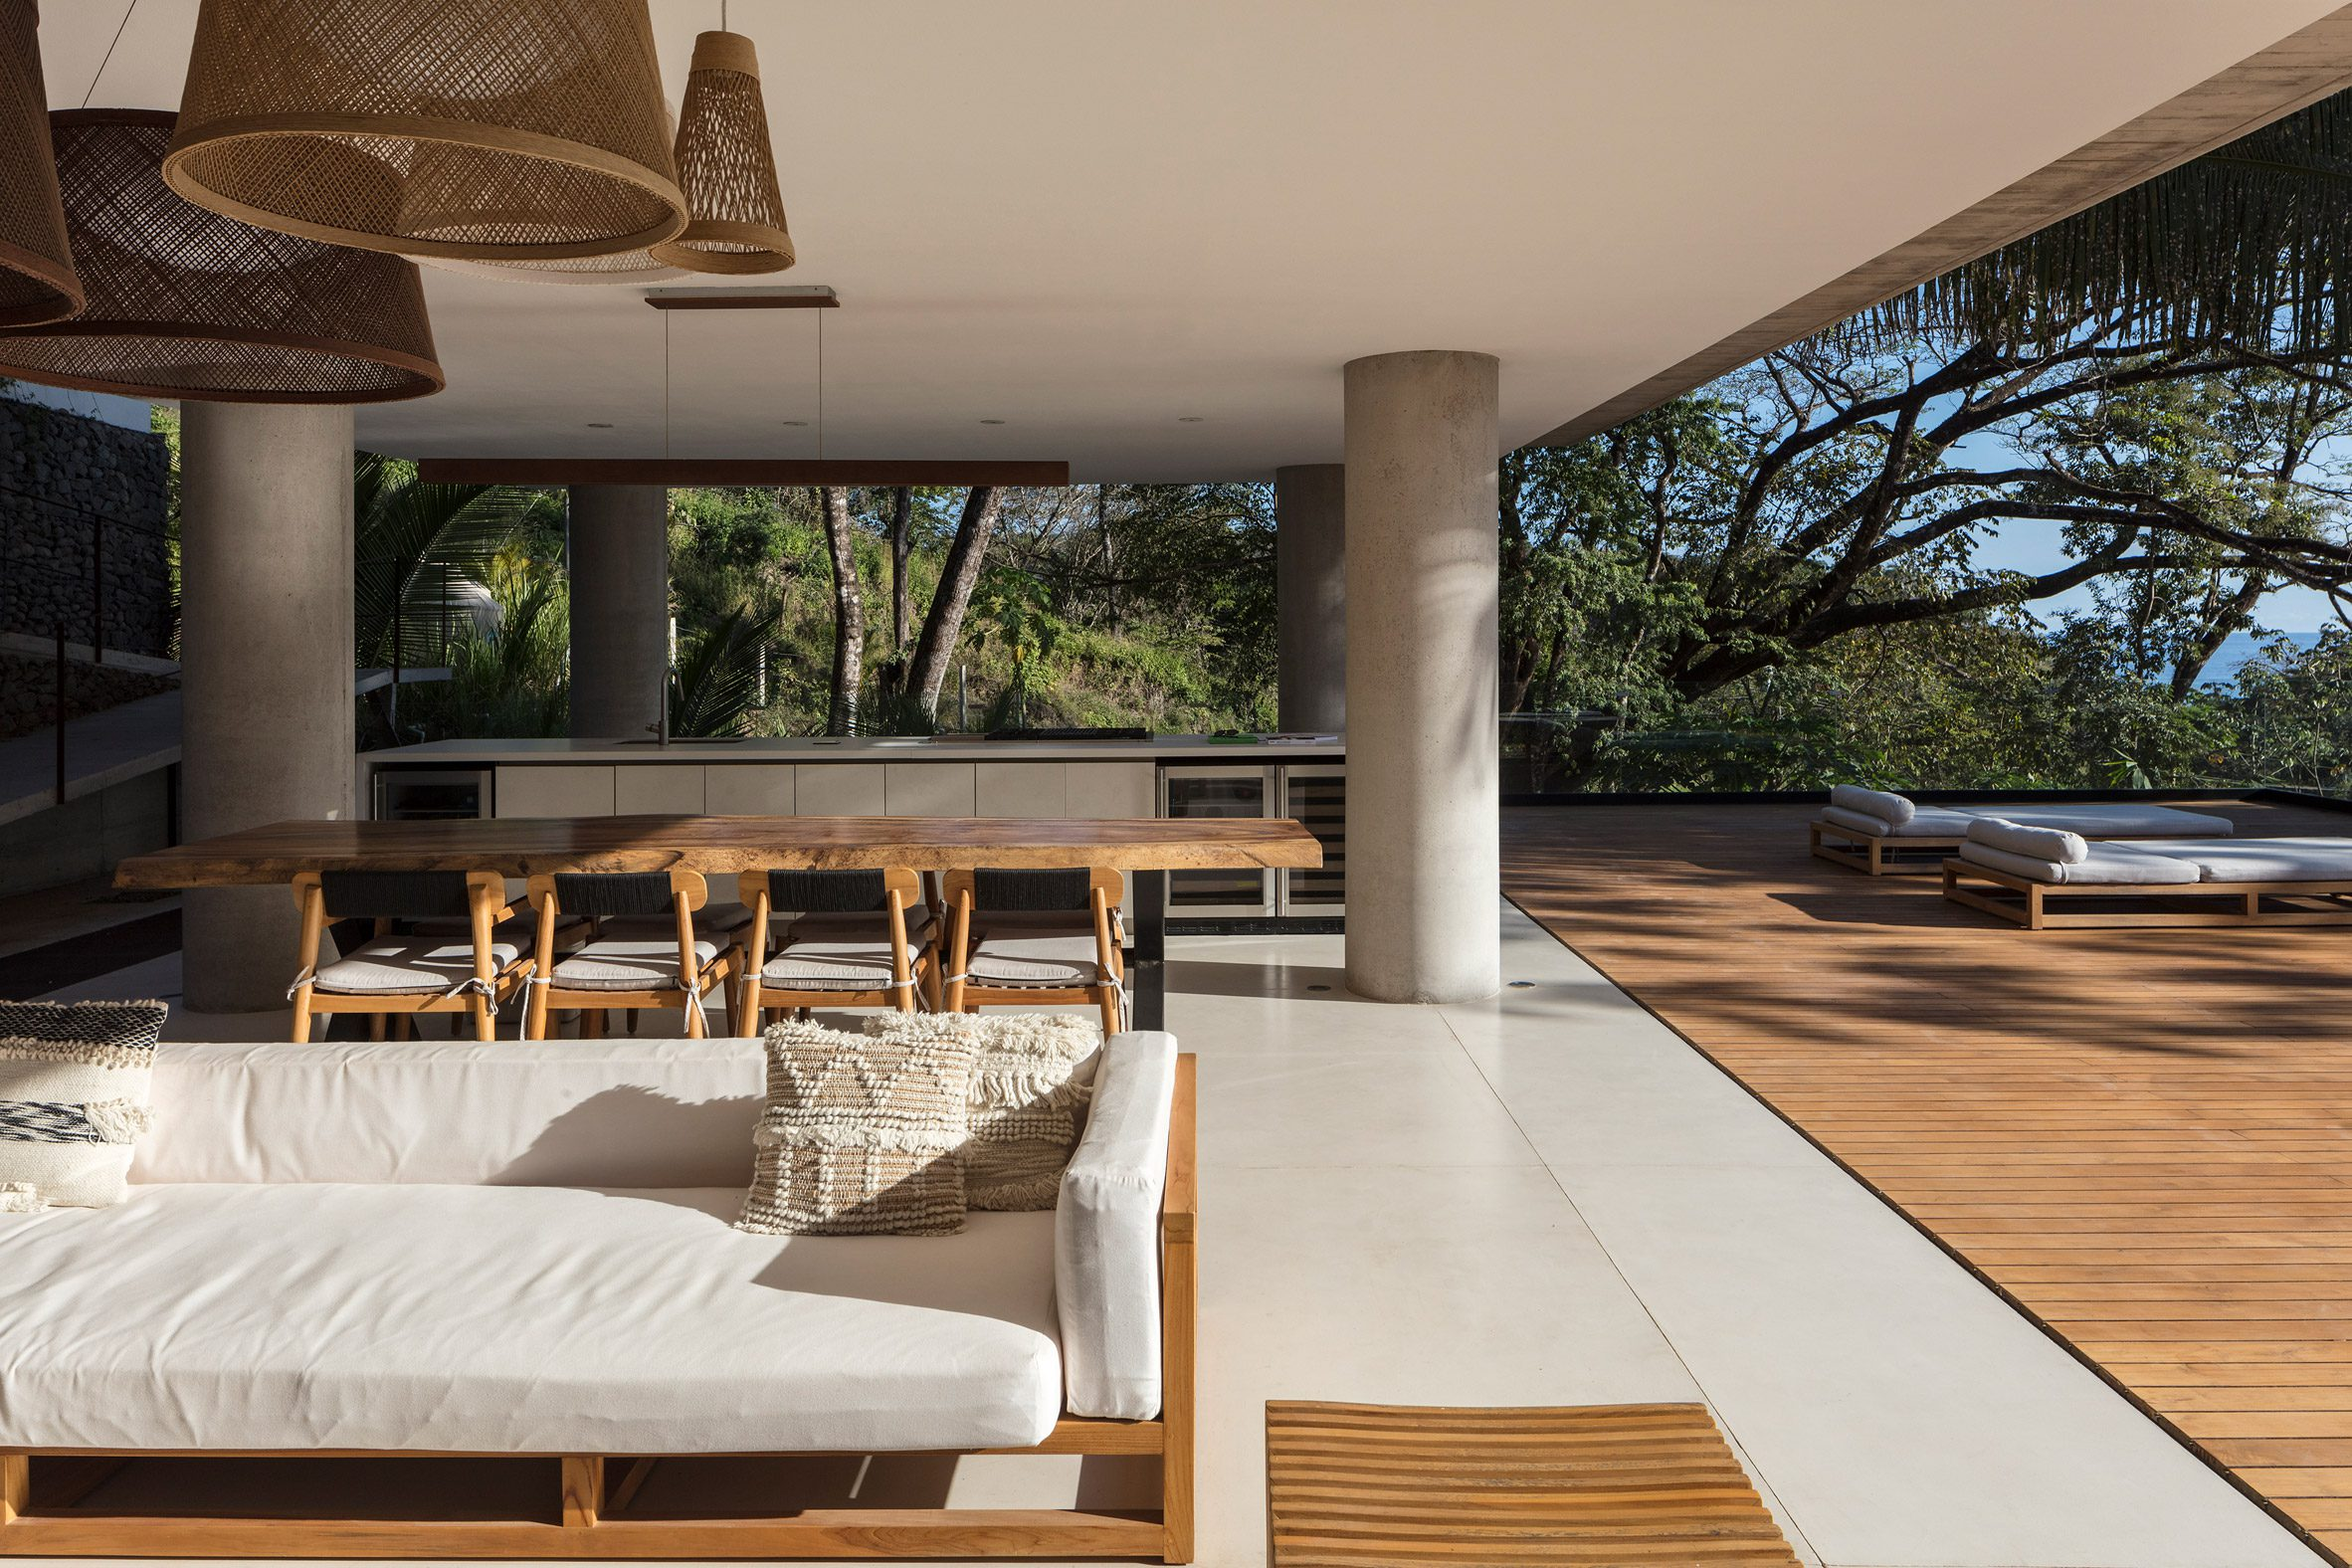 Communal living area open to the landscape